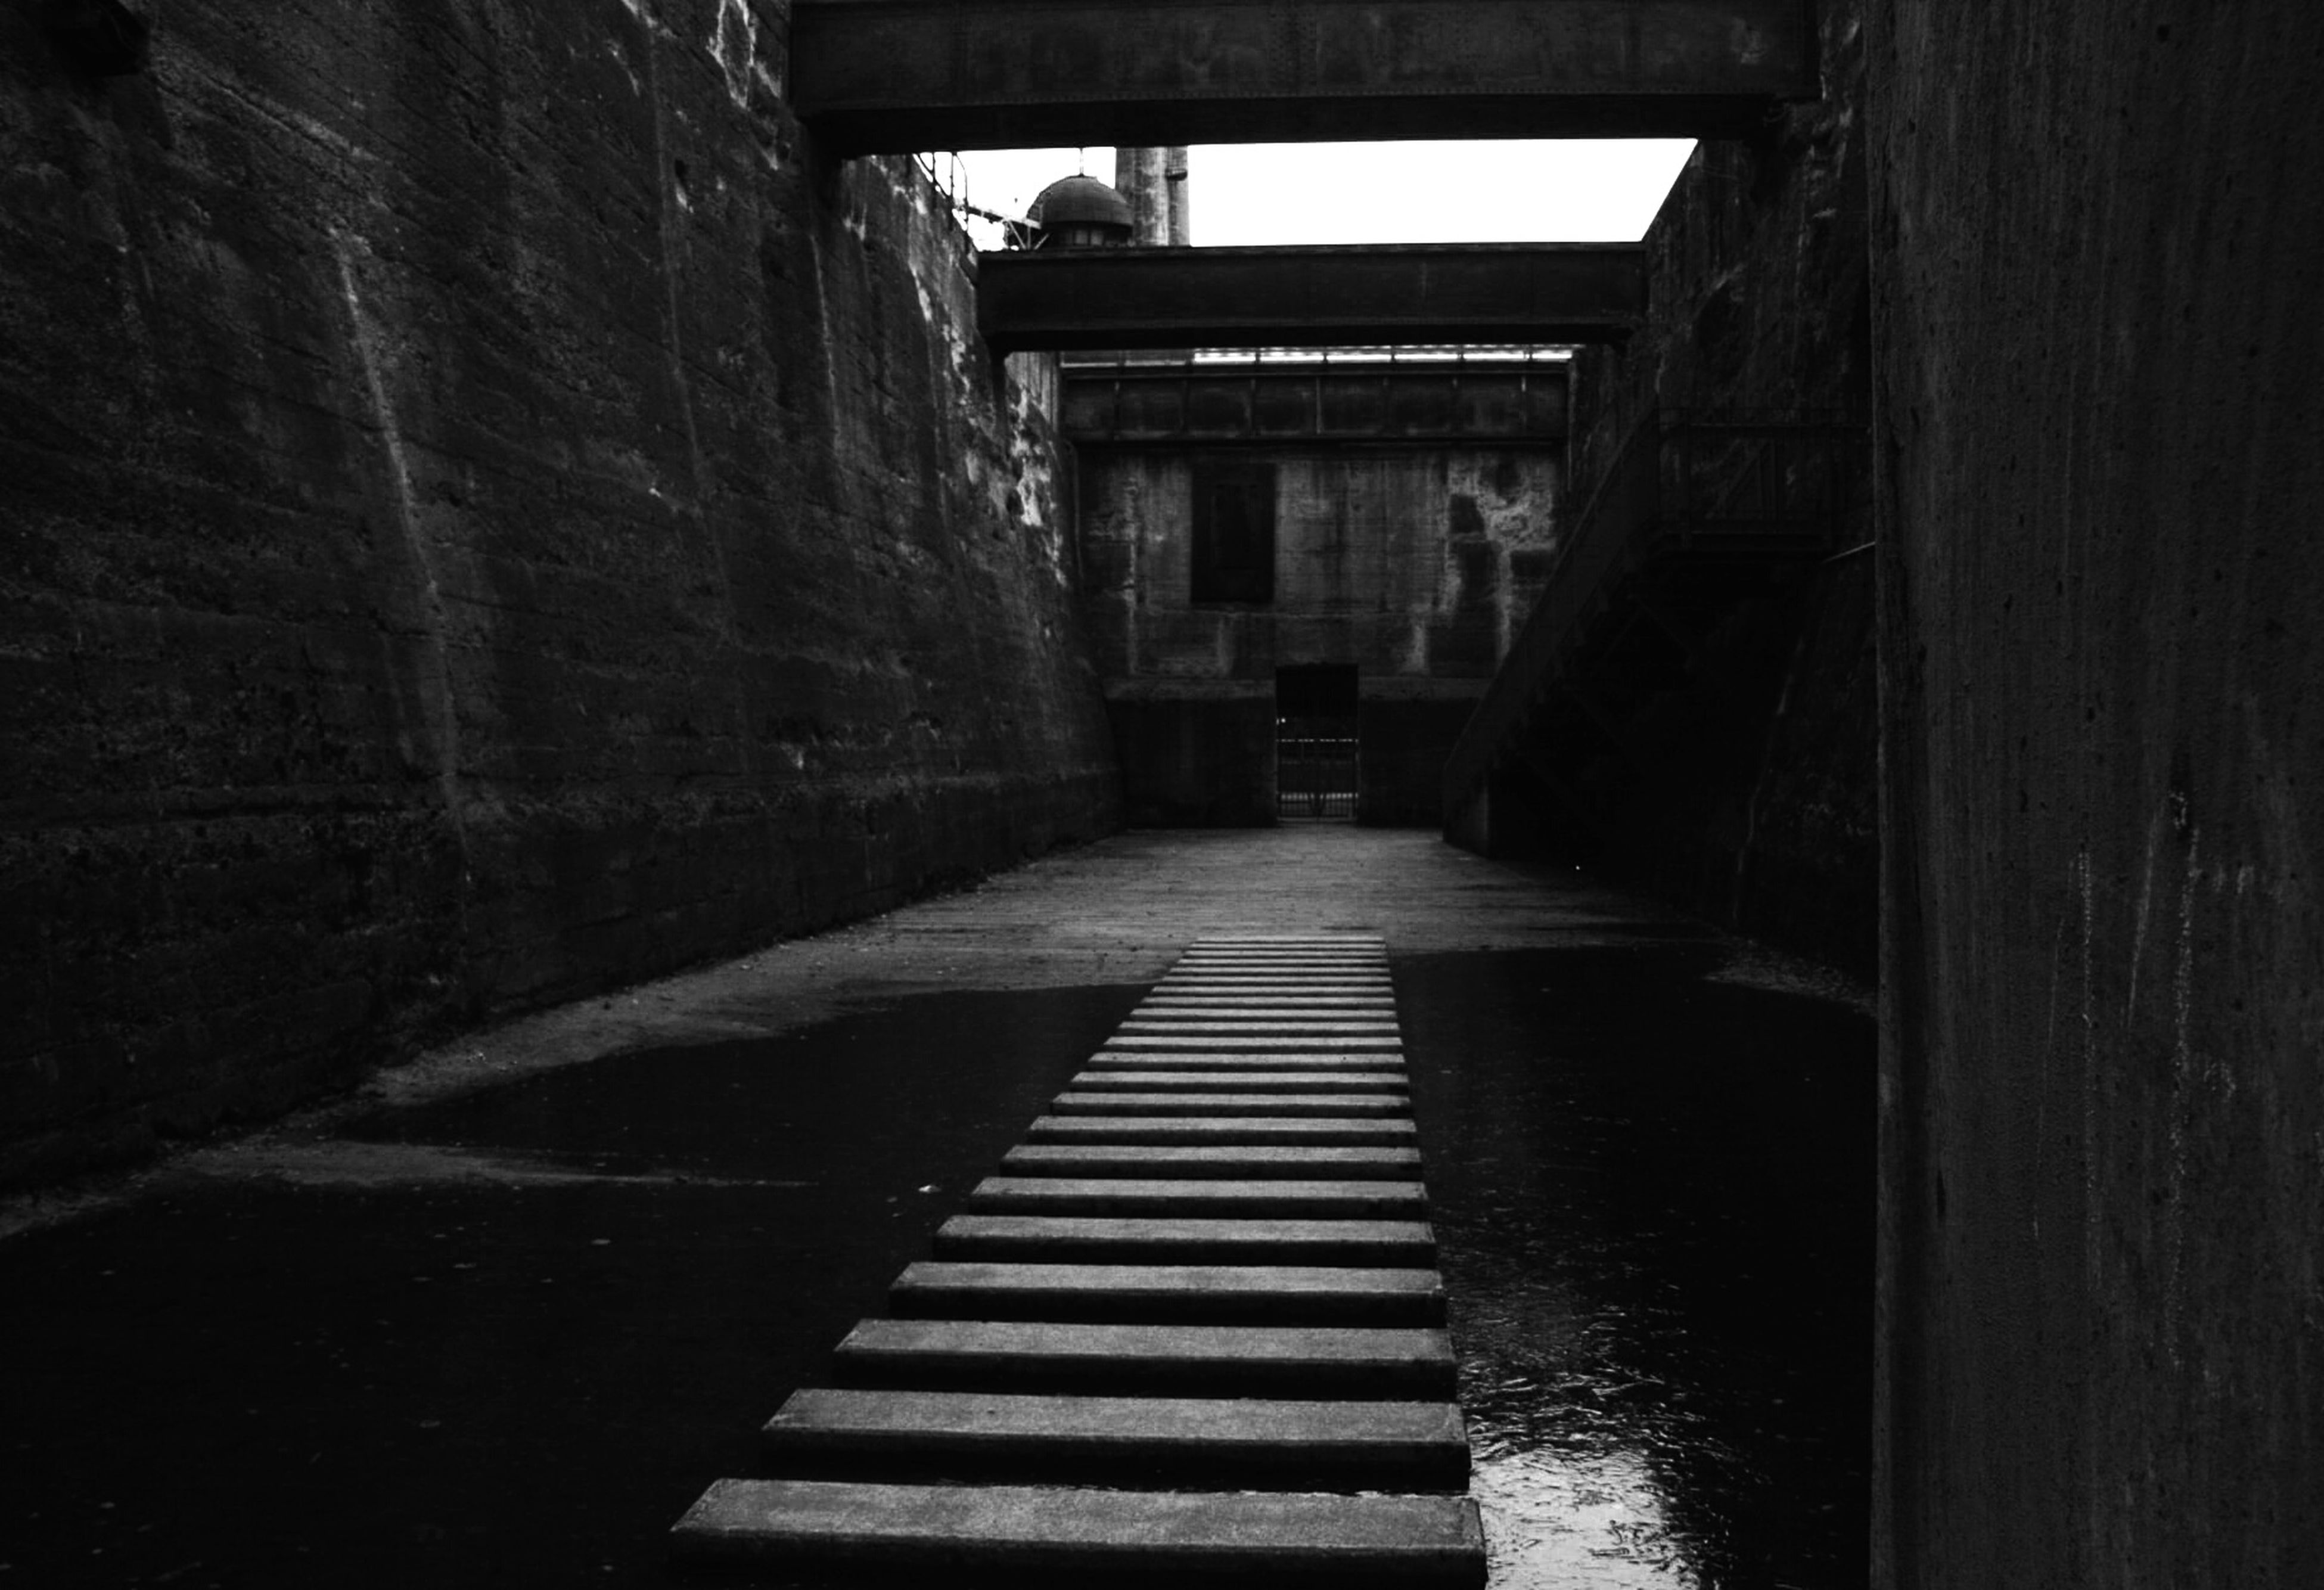 built structure, architecture, steps, water, the way forward, building exterior, staircase, steps and staircases, railing, building, diminishing perspective, narrow, day, sunlight, waterfront, reflection, no people, canal, outdoors, stairs